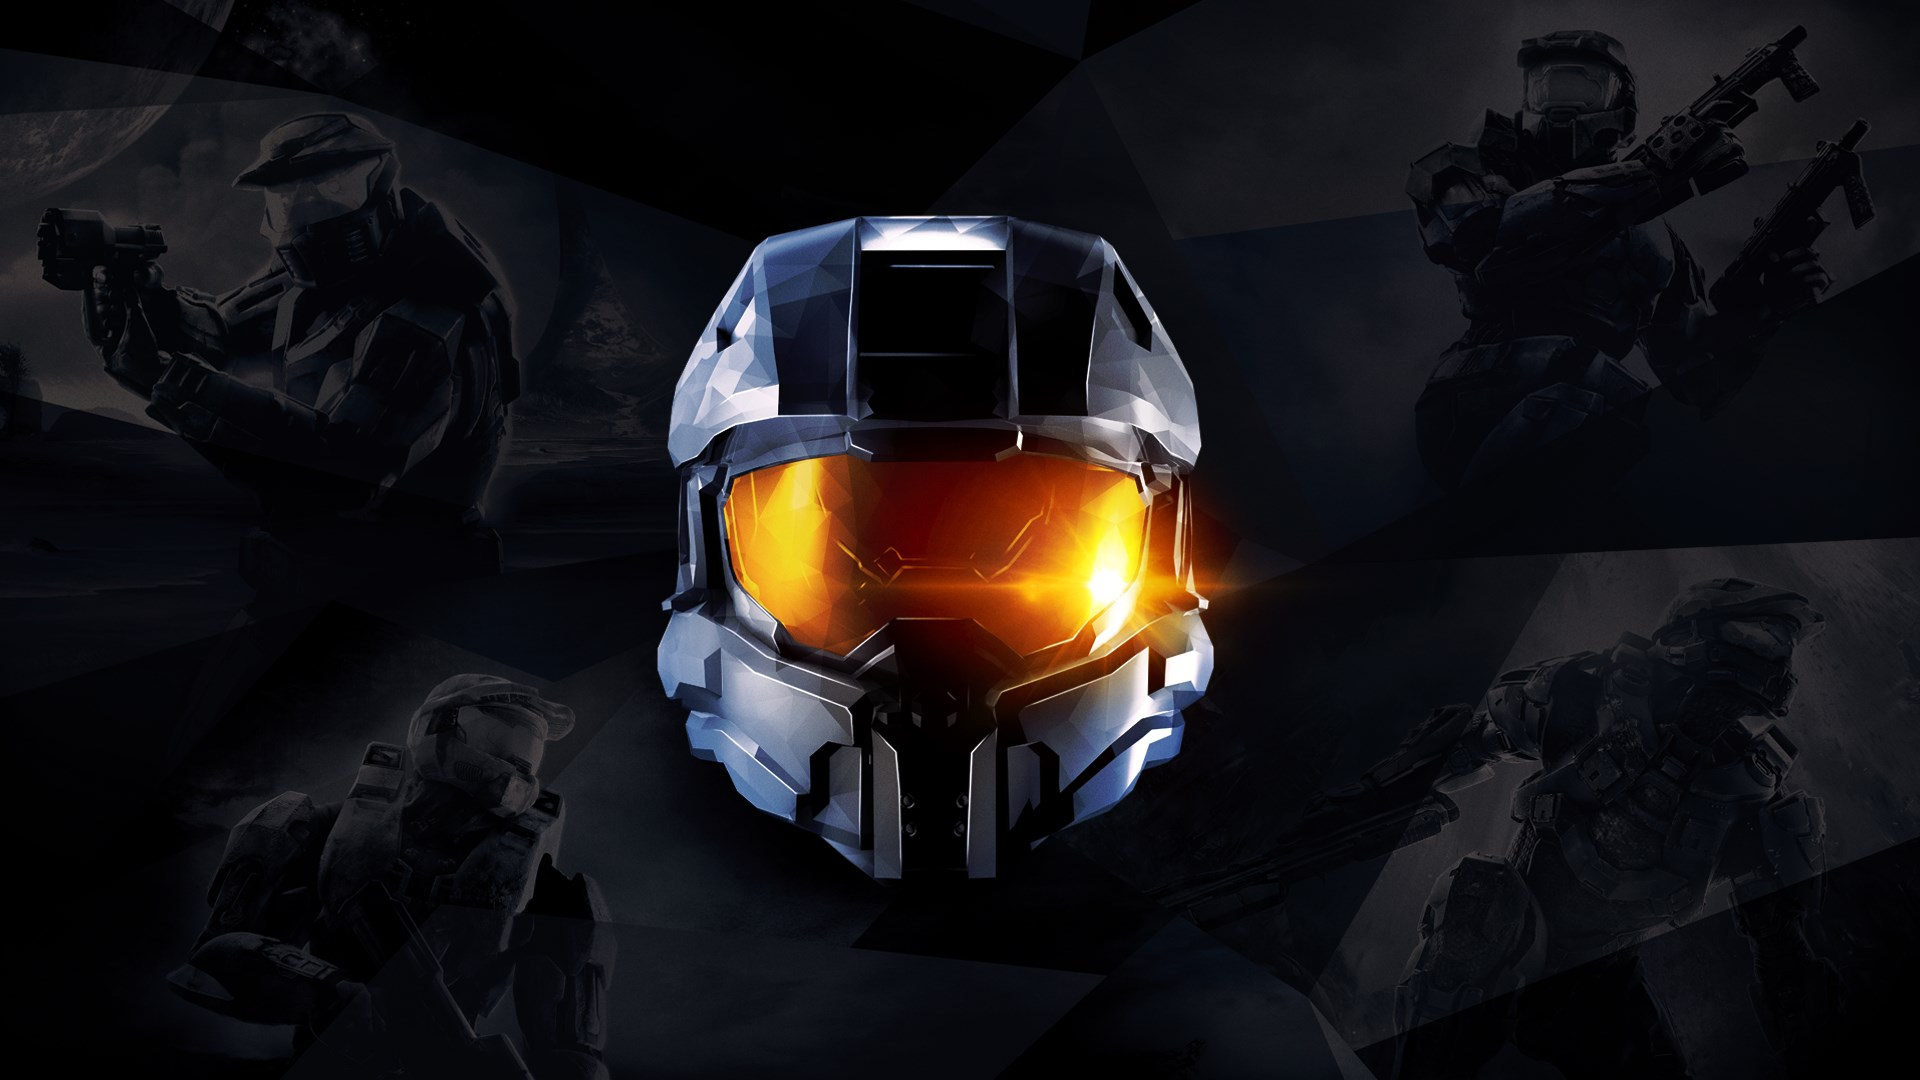 Halo: The Master Chief Collection llegará a PC junto con Halo: Reach